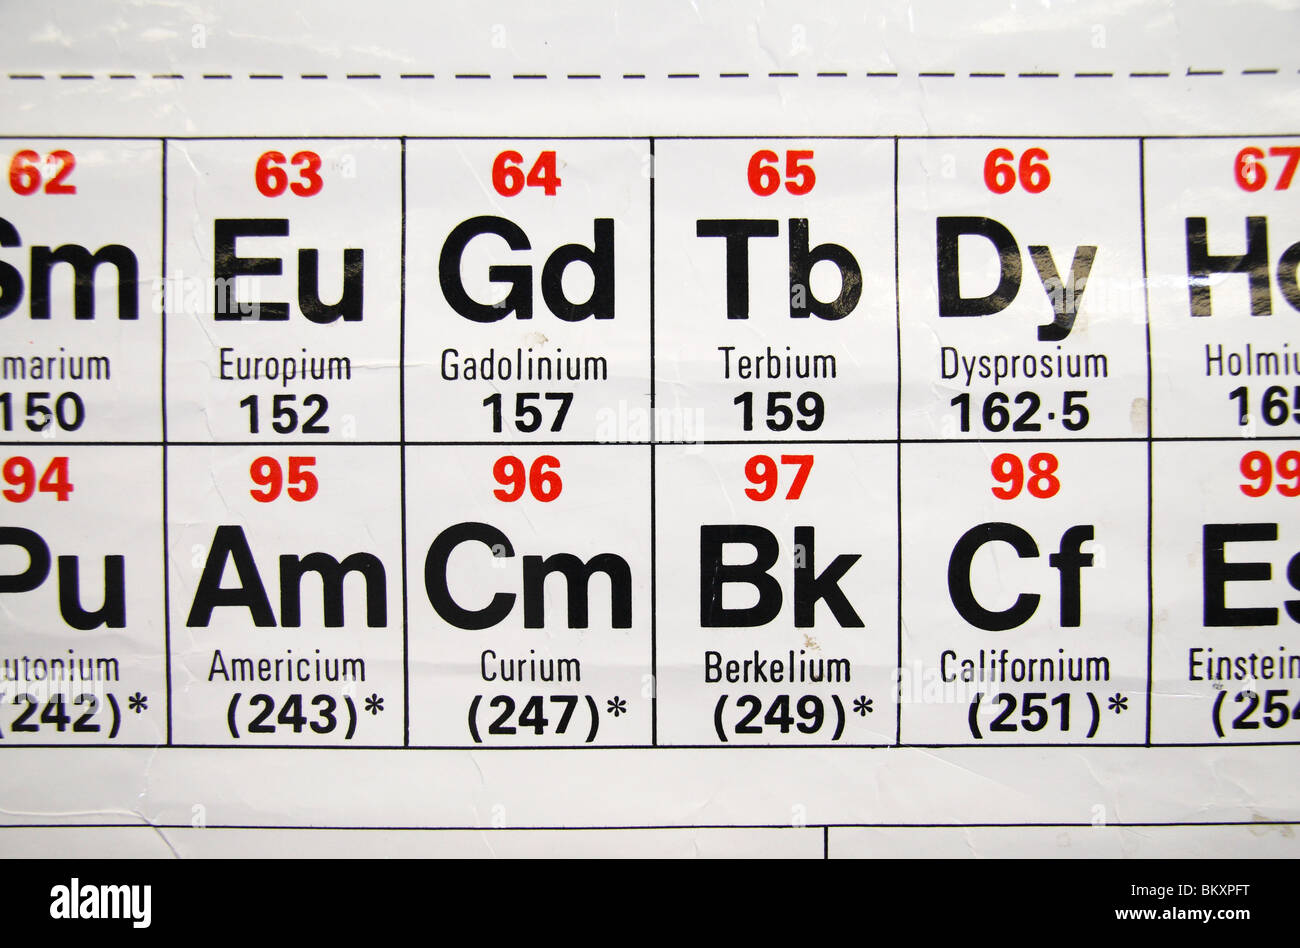 Sheffield periodic table images periodic table images periodic table bk image collections periodic table images periodic table bk image collections periodic table images gamestrikefo Gallery